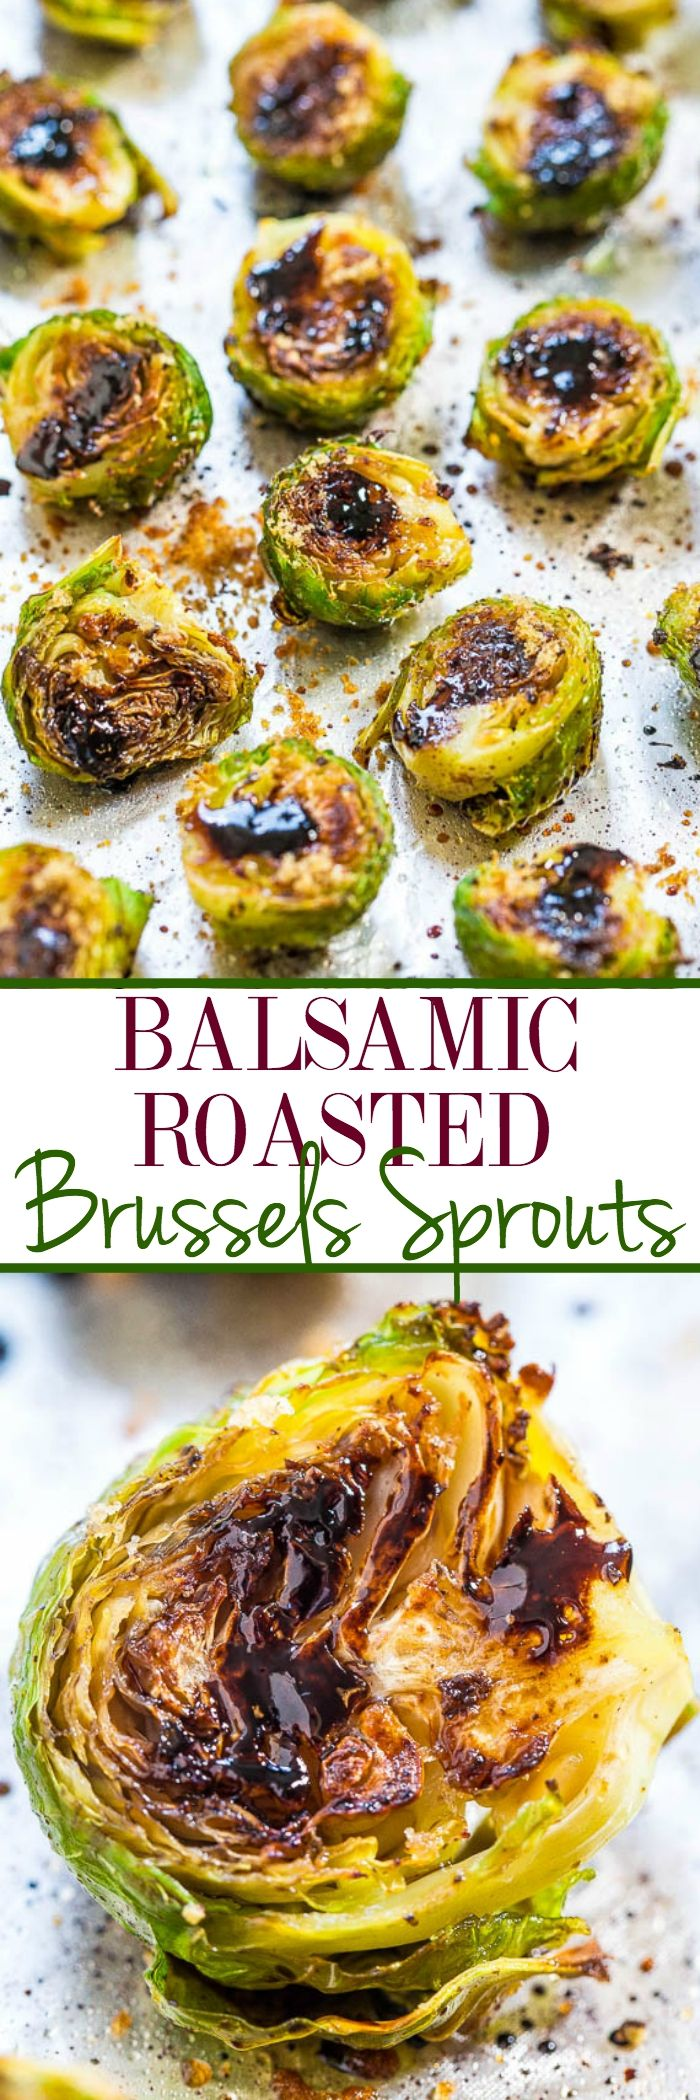 Brussels Sprouts Recipes | Balsamic Roasted Brussels Sprouts